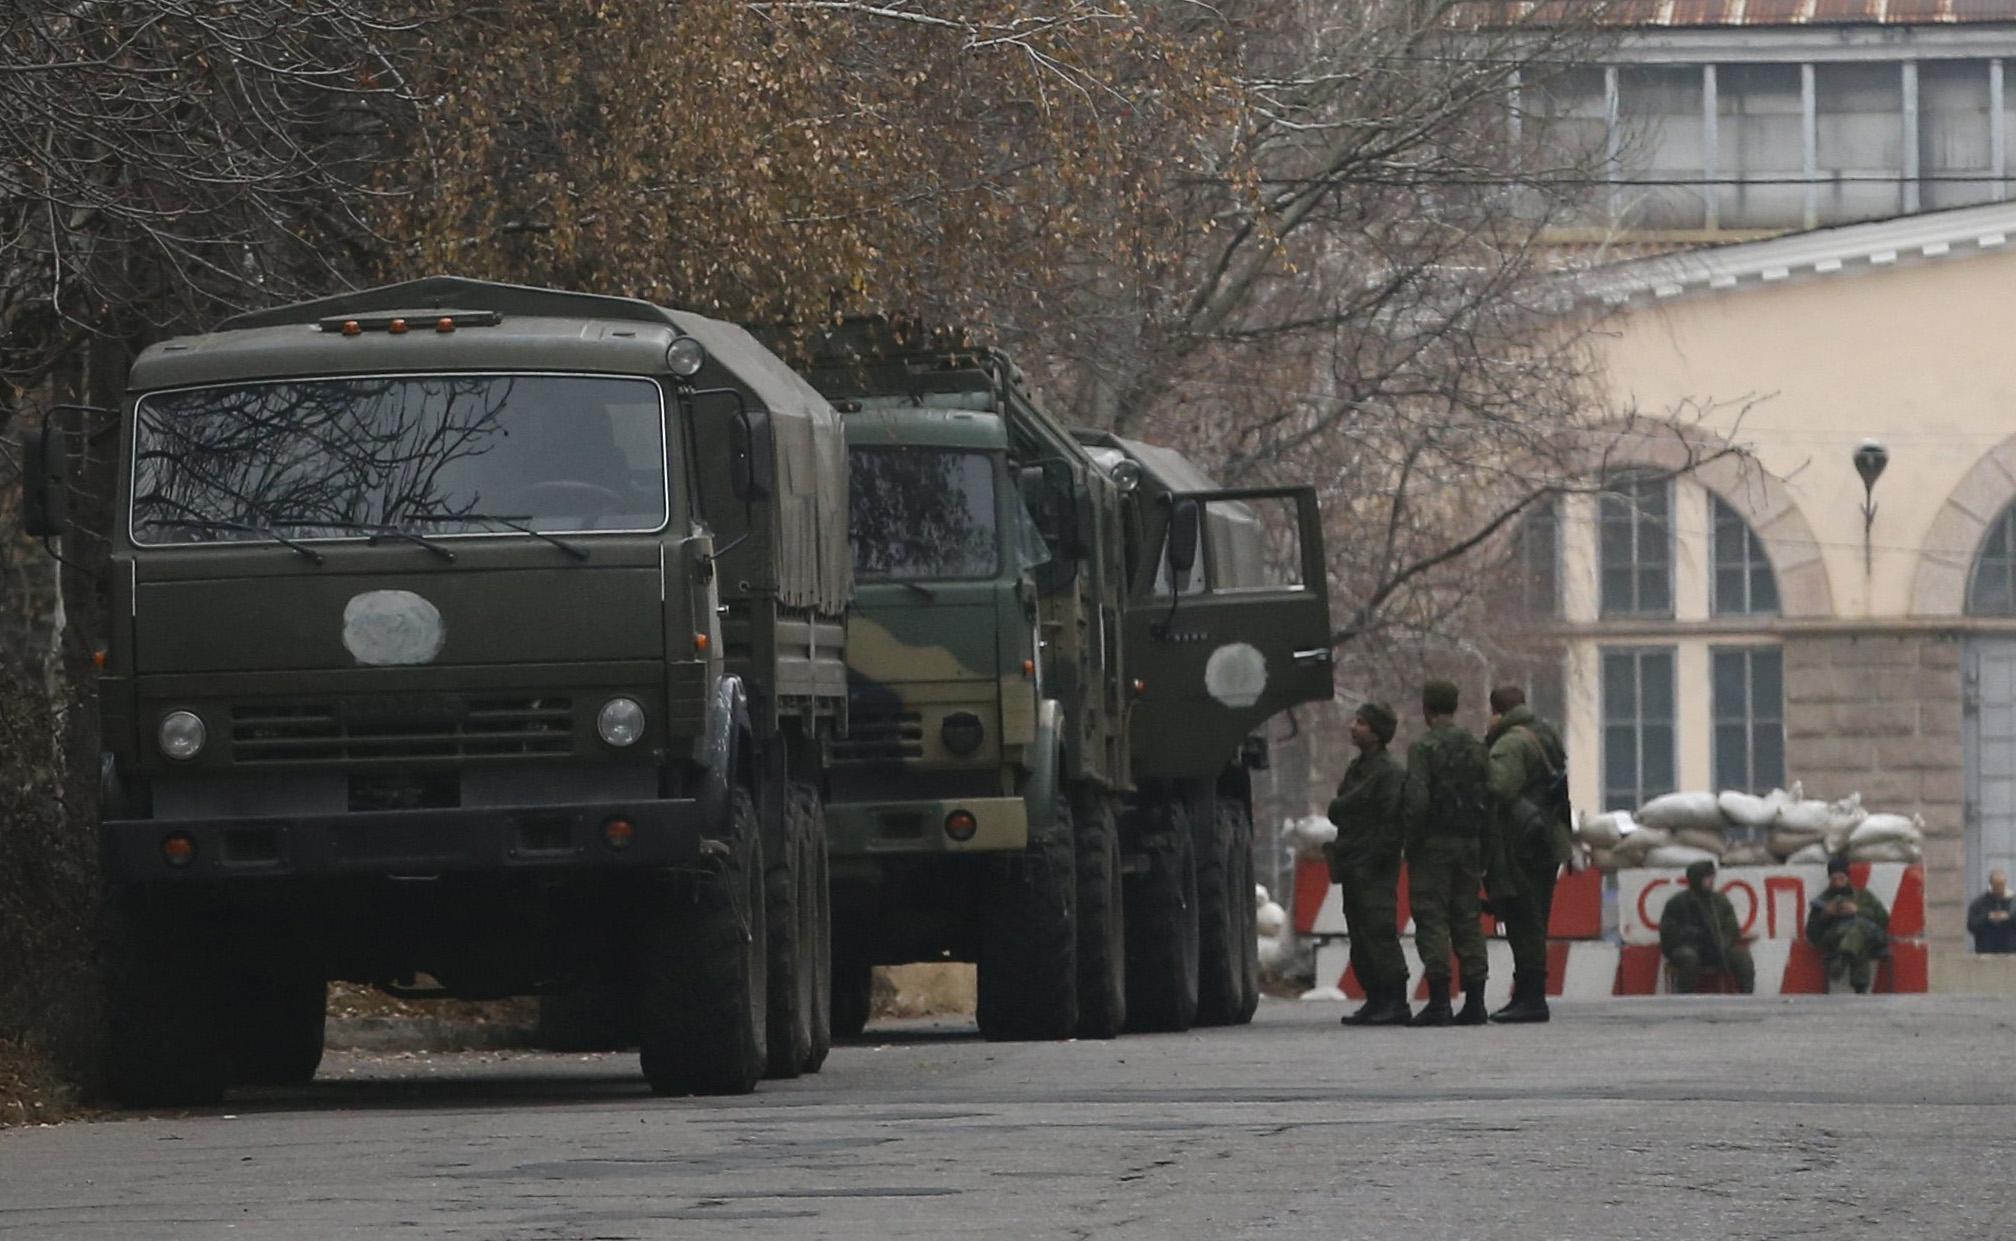 Russia has consistently denied it has any military presence in Ukraine